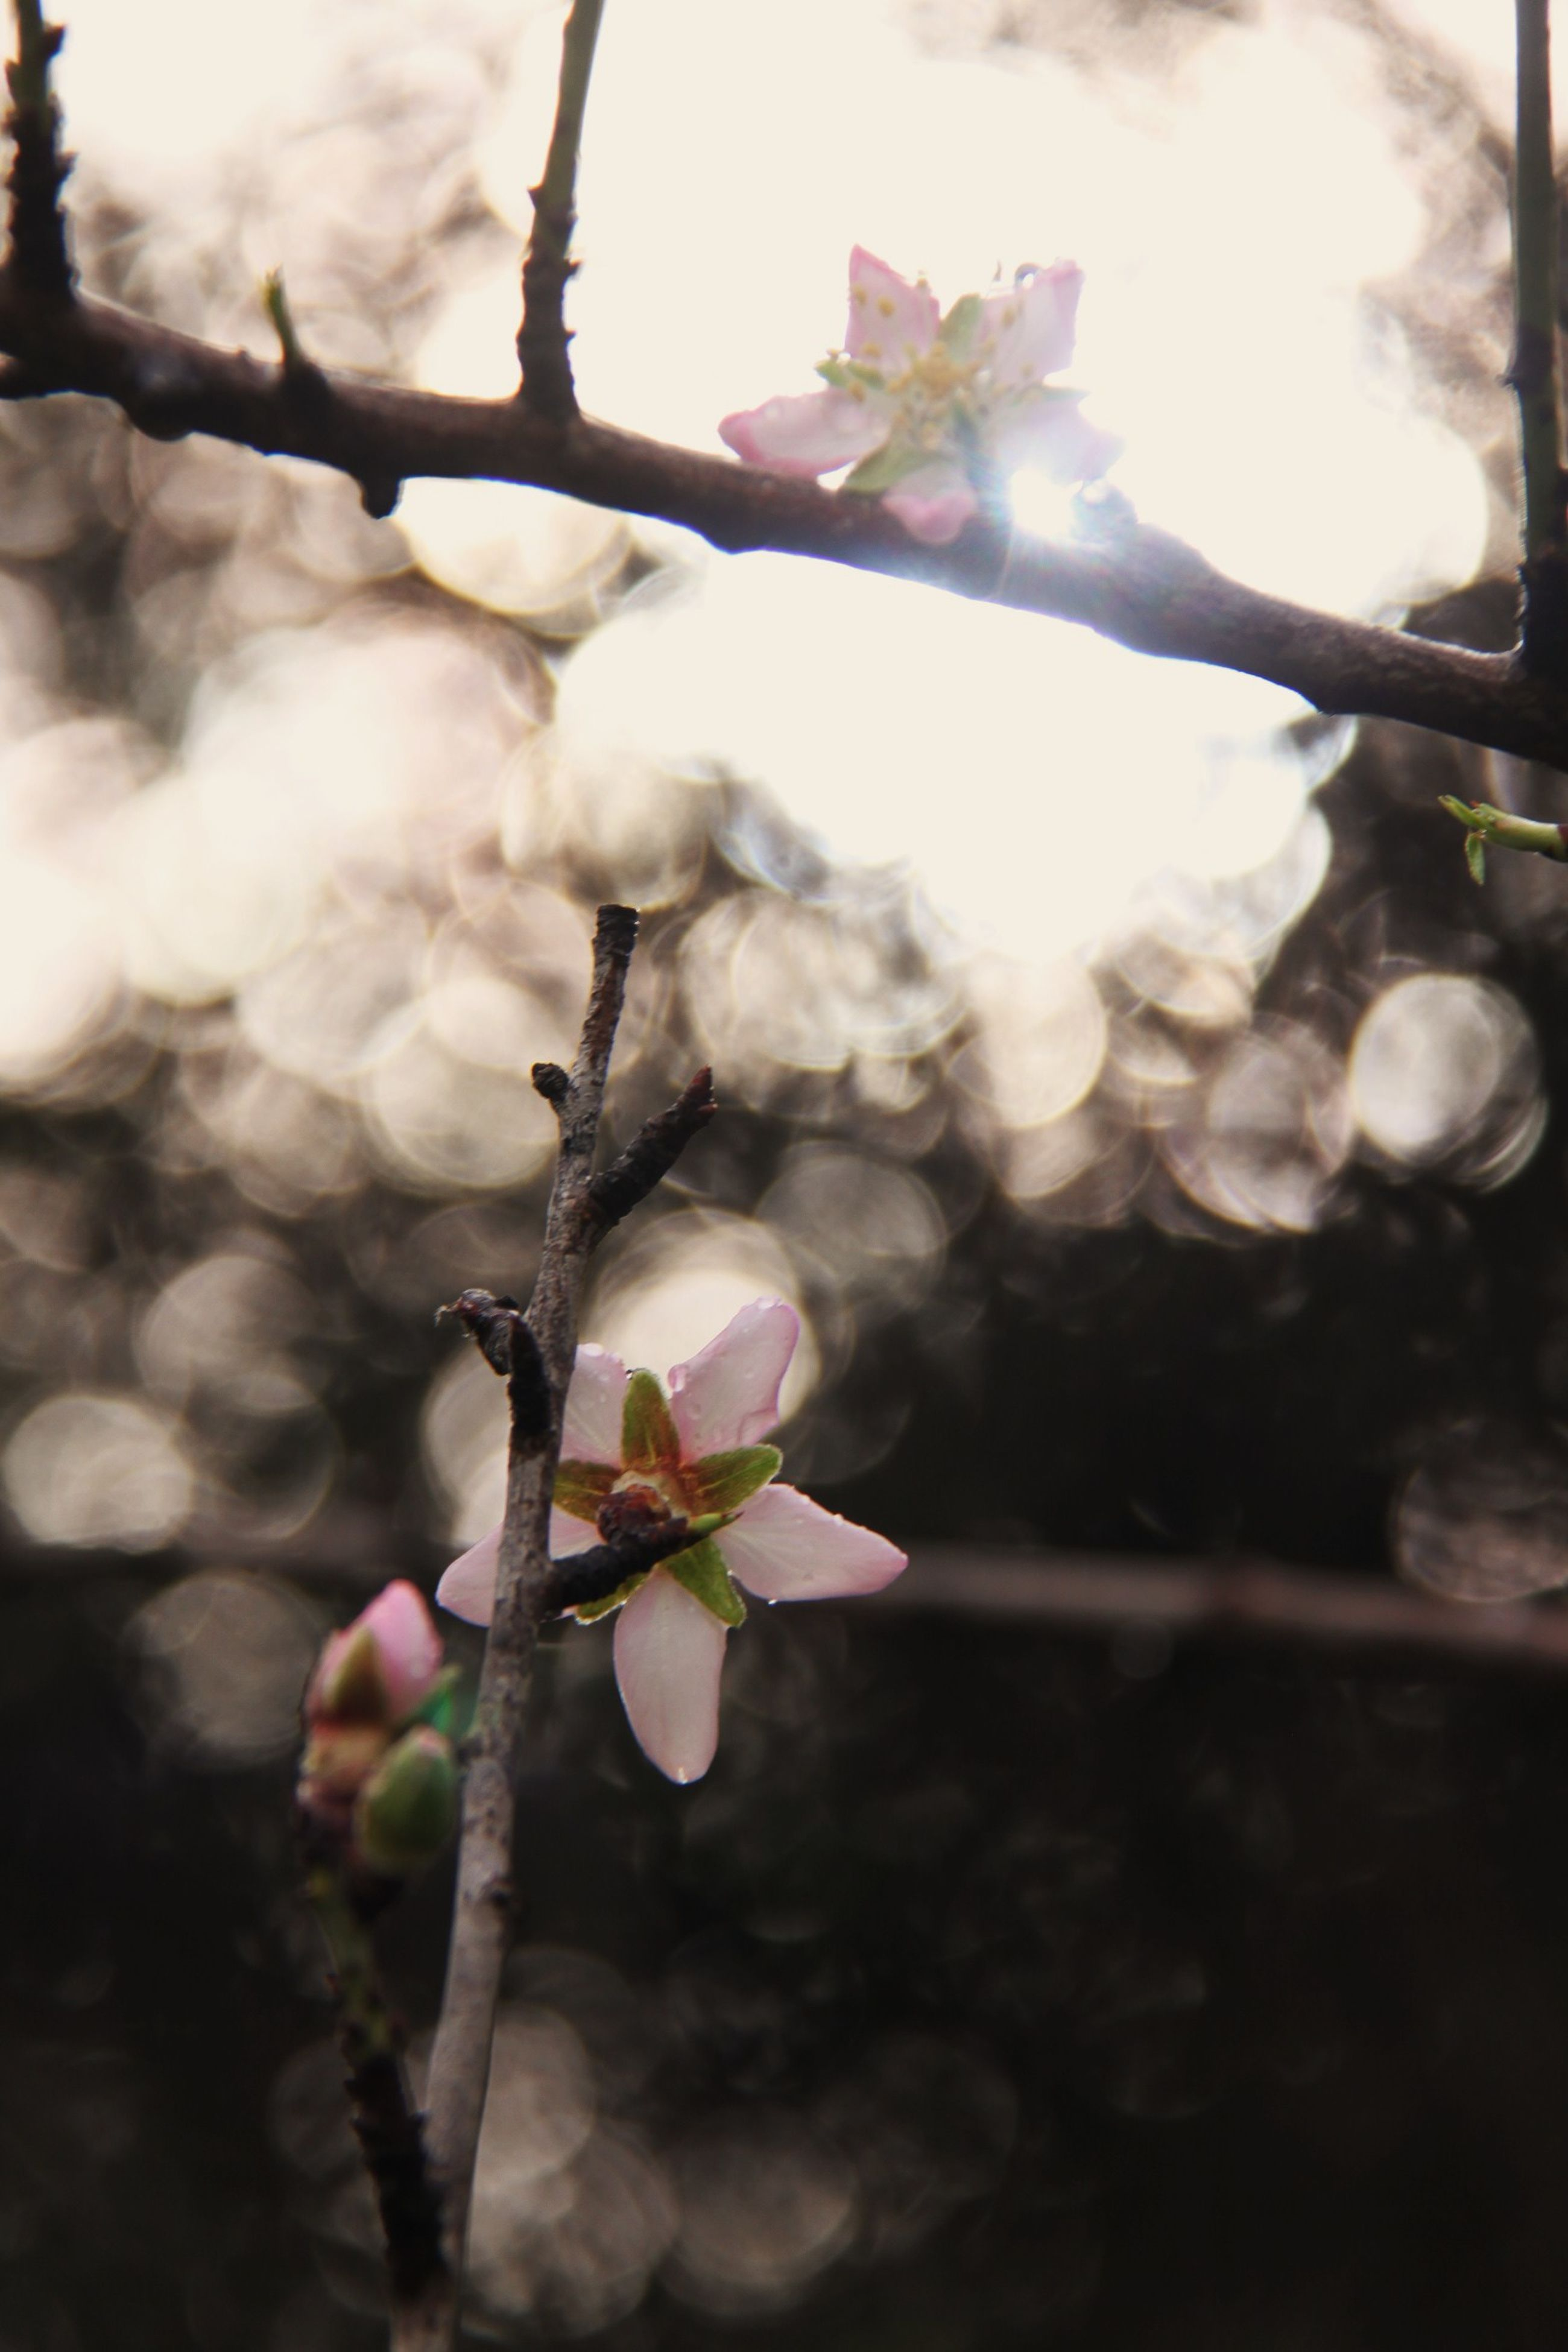 growth, nature, flower, twig, fragility, plant, no people, beauty in nature, outdoors, freshness, close-up, branch, focus on foreground, tree, day, springtime, flower head